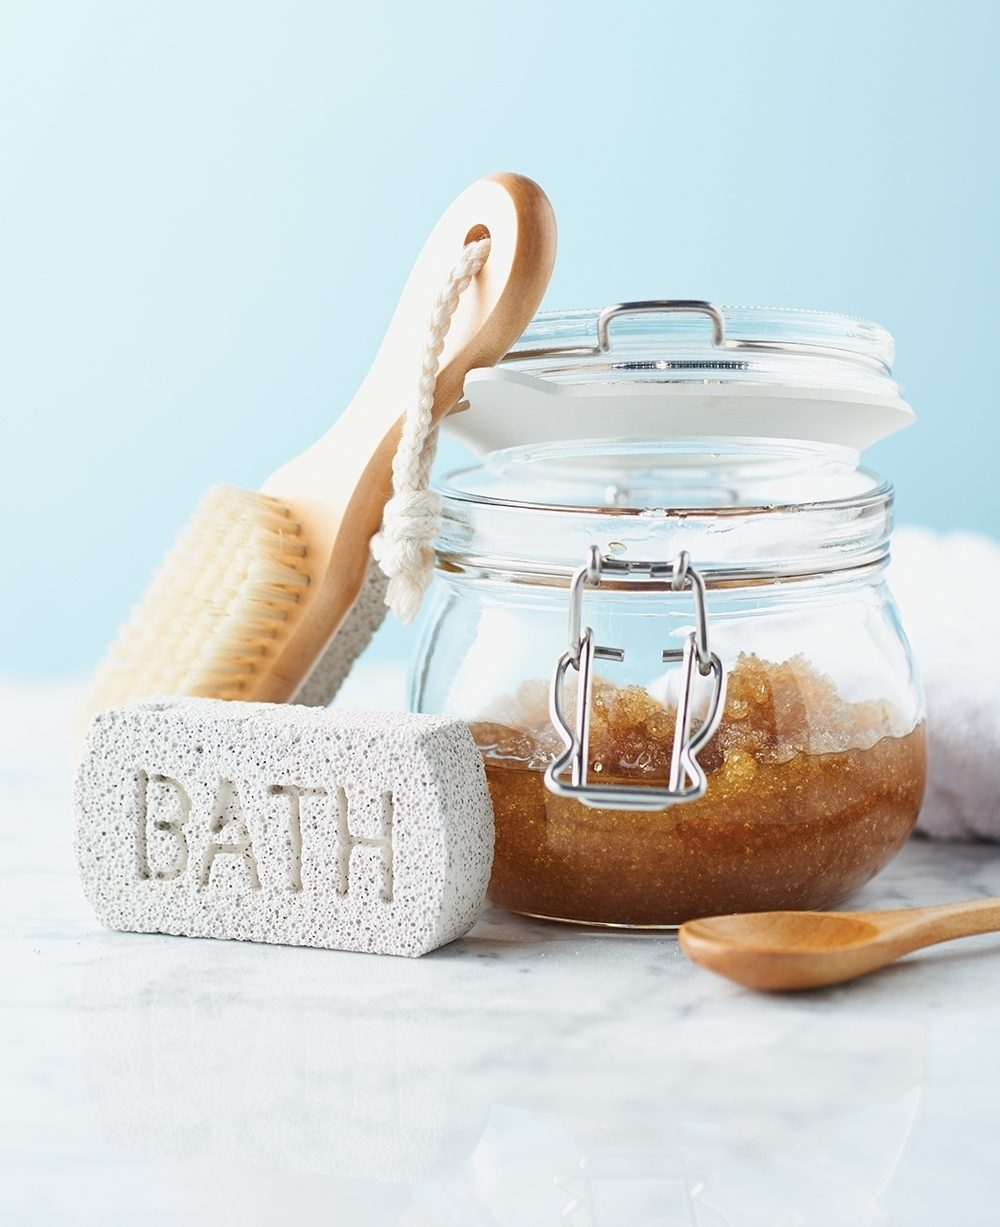 Mix a batch of this sweet exfoliant, which soothes as it removes dry skin. Use sugar for a gentler exfoliation, or substitute salt if you want a more intensive scrub for tough skin patches.